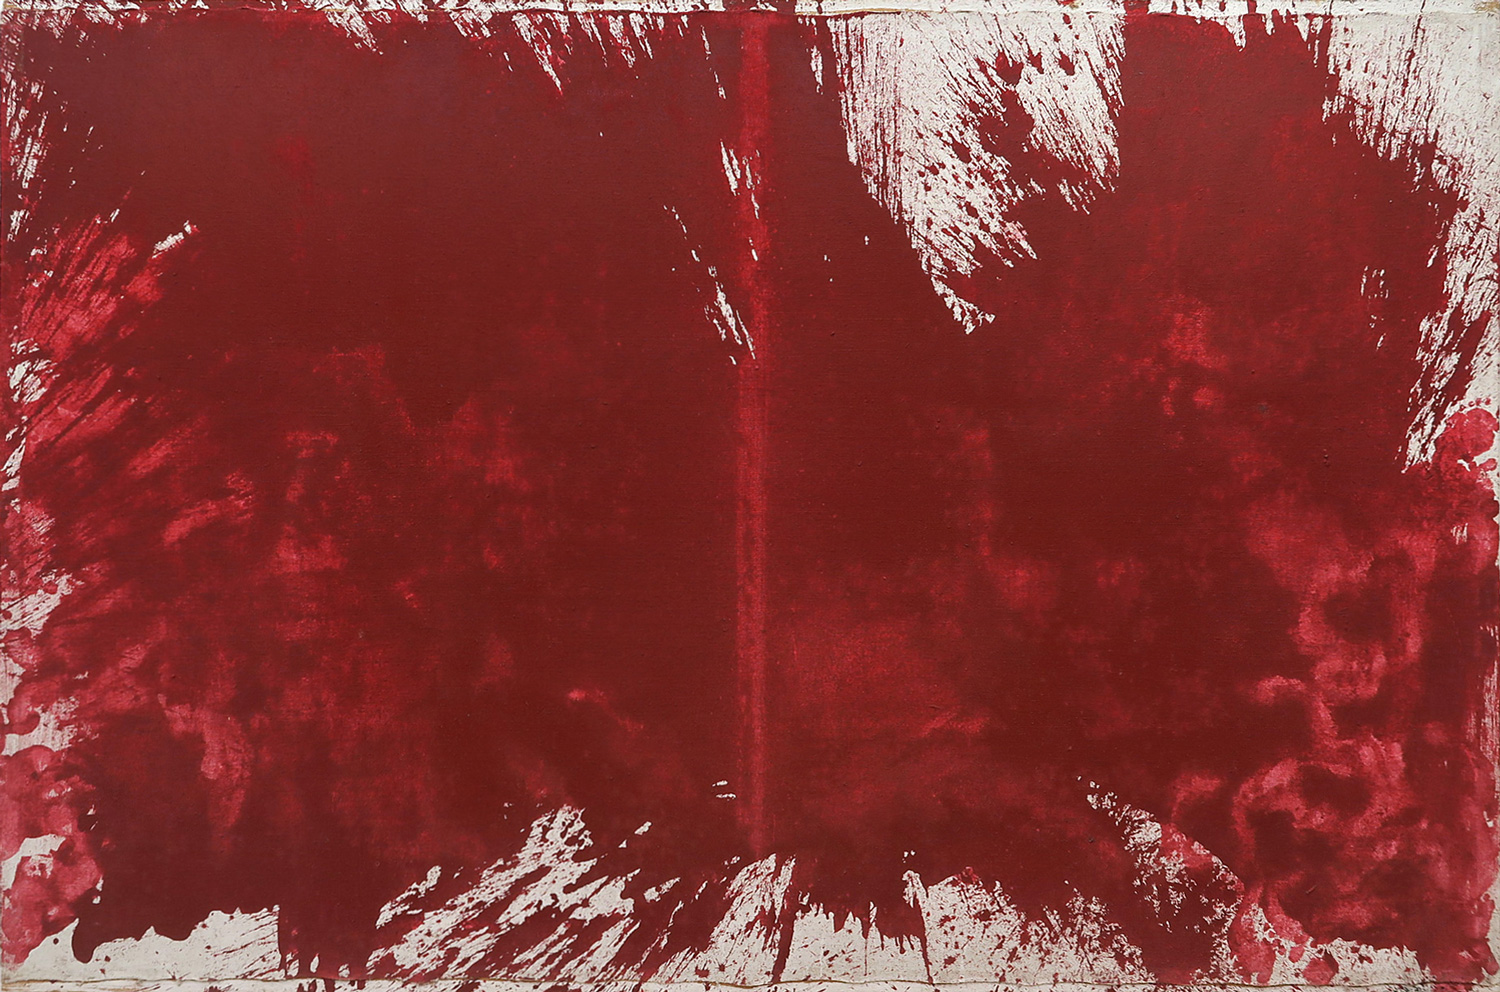 Hermann Nitsch 1983 Oil on Canvas 78 3/4 x 118 1/4 in 200 x 300 cm 2015 Marc Straus Gallery